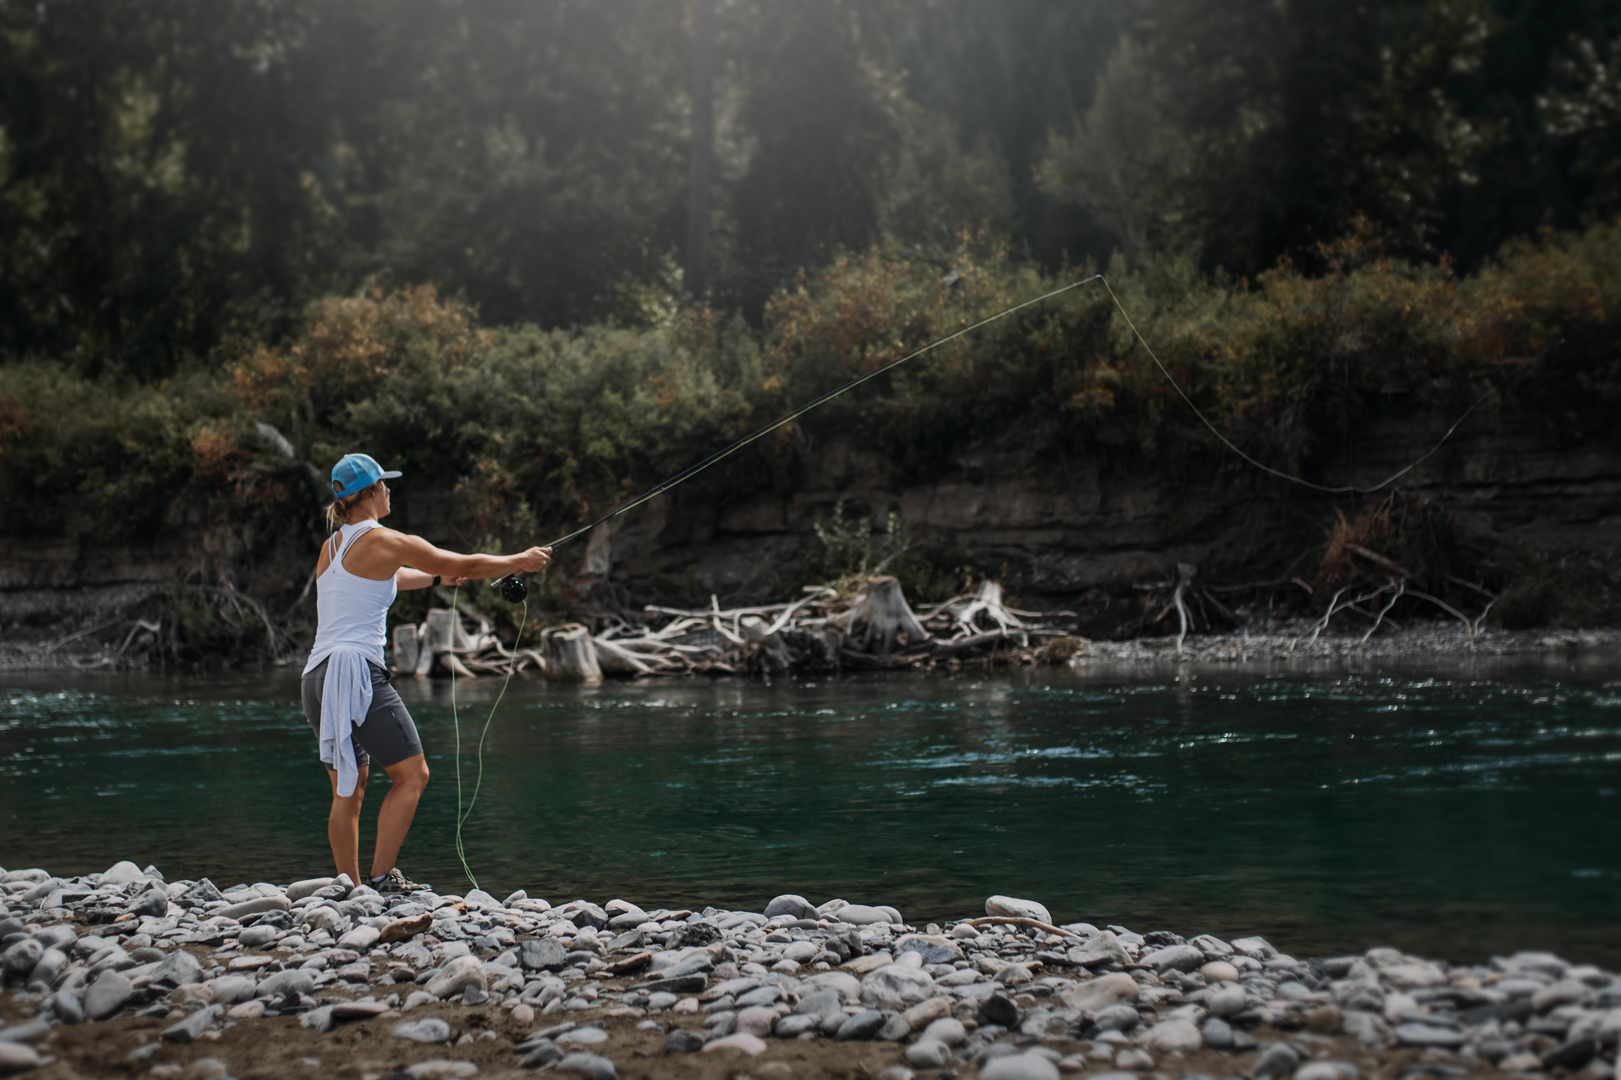 Try Fishing While Camping This Year. Photo: Lacey Pukas for Freshwater Fisheries Society